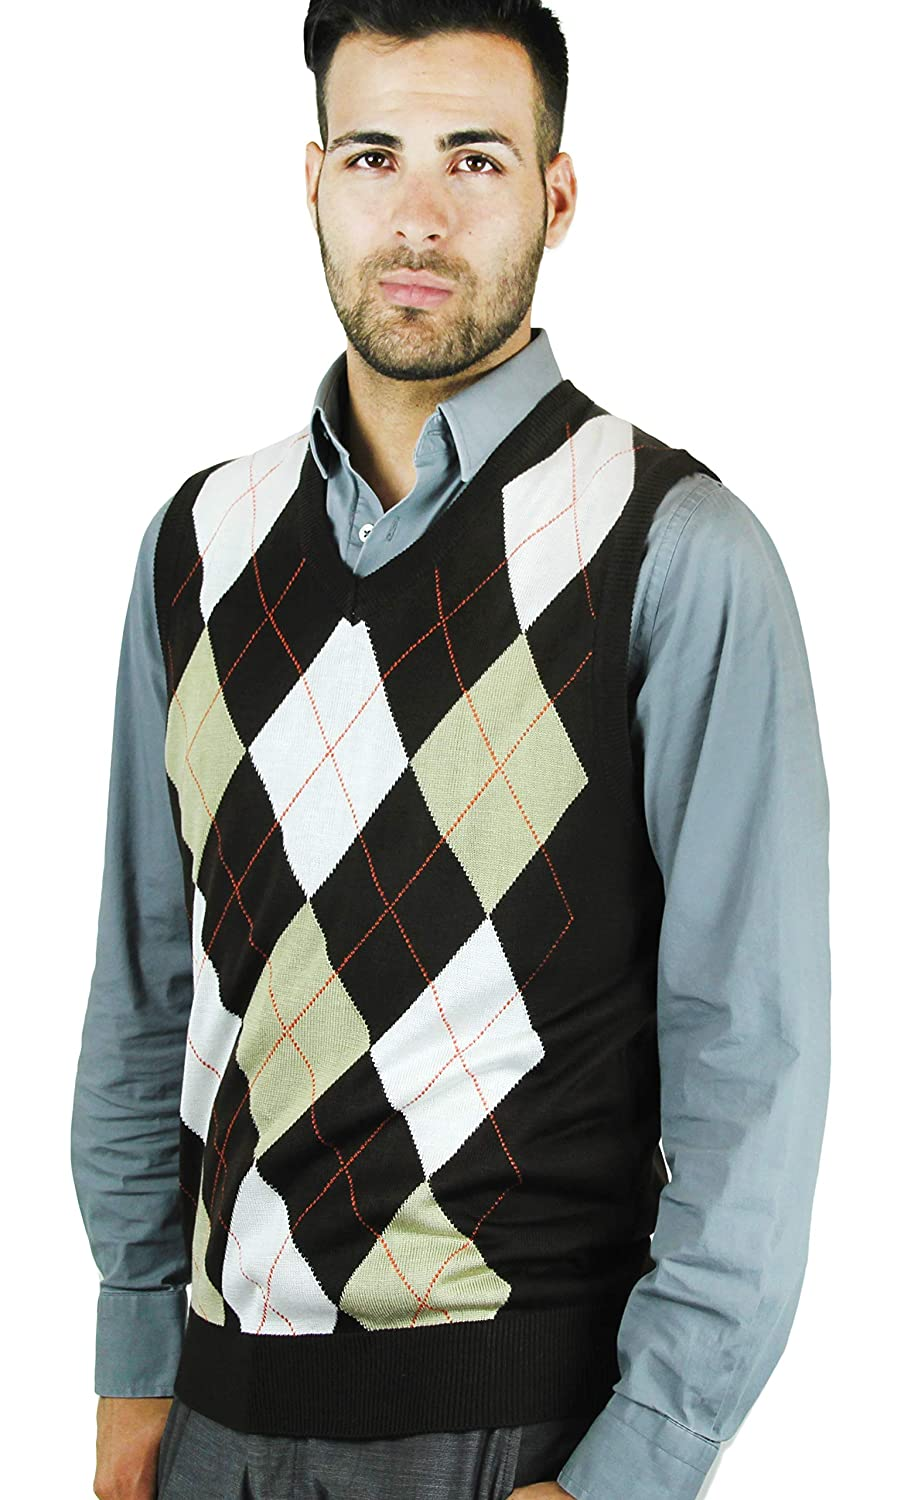 Blue Ocean Argyle Sweater Vest SV-2555